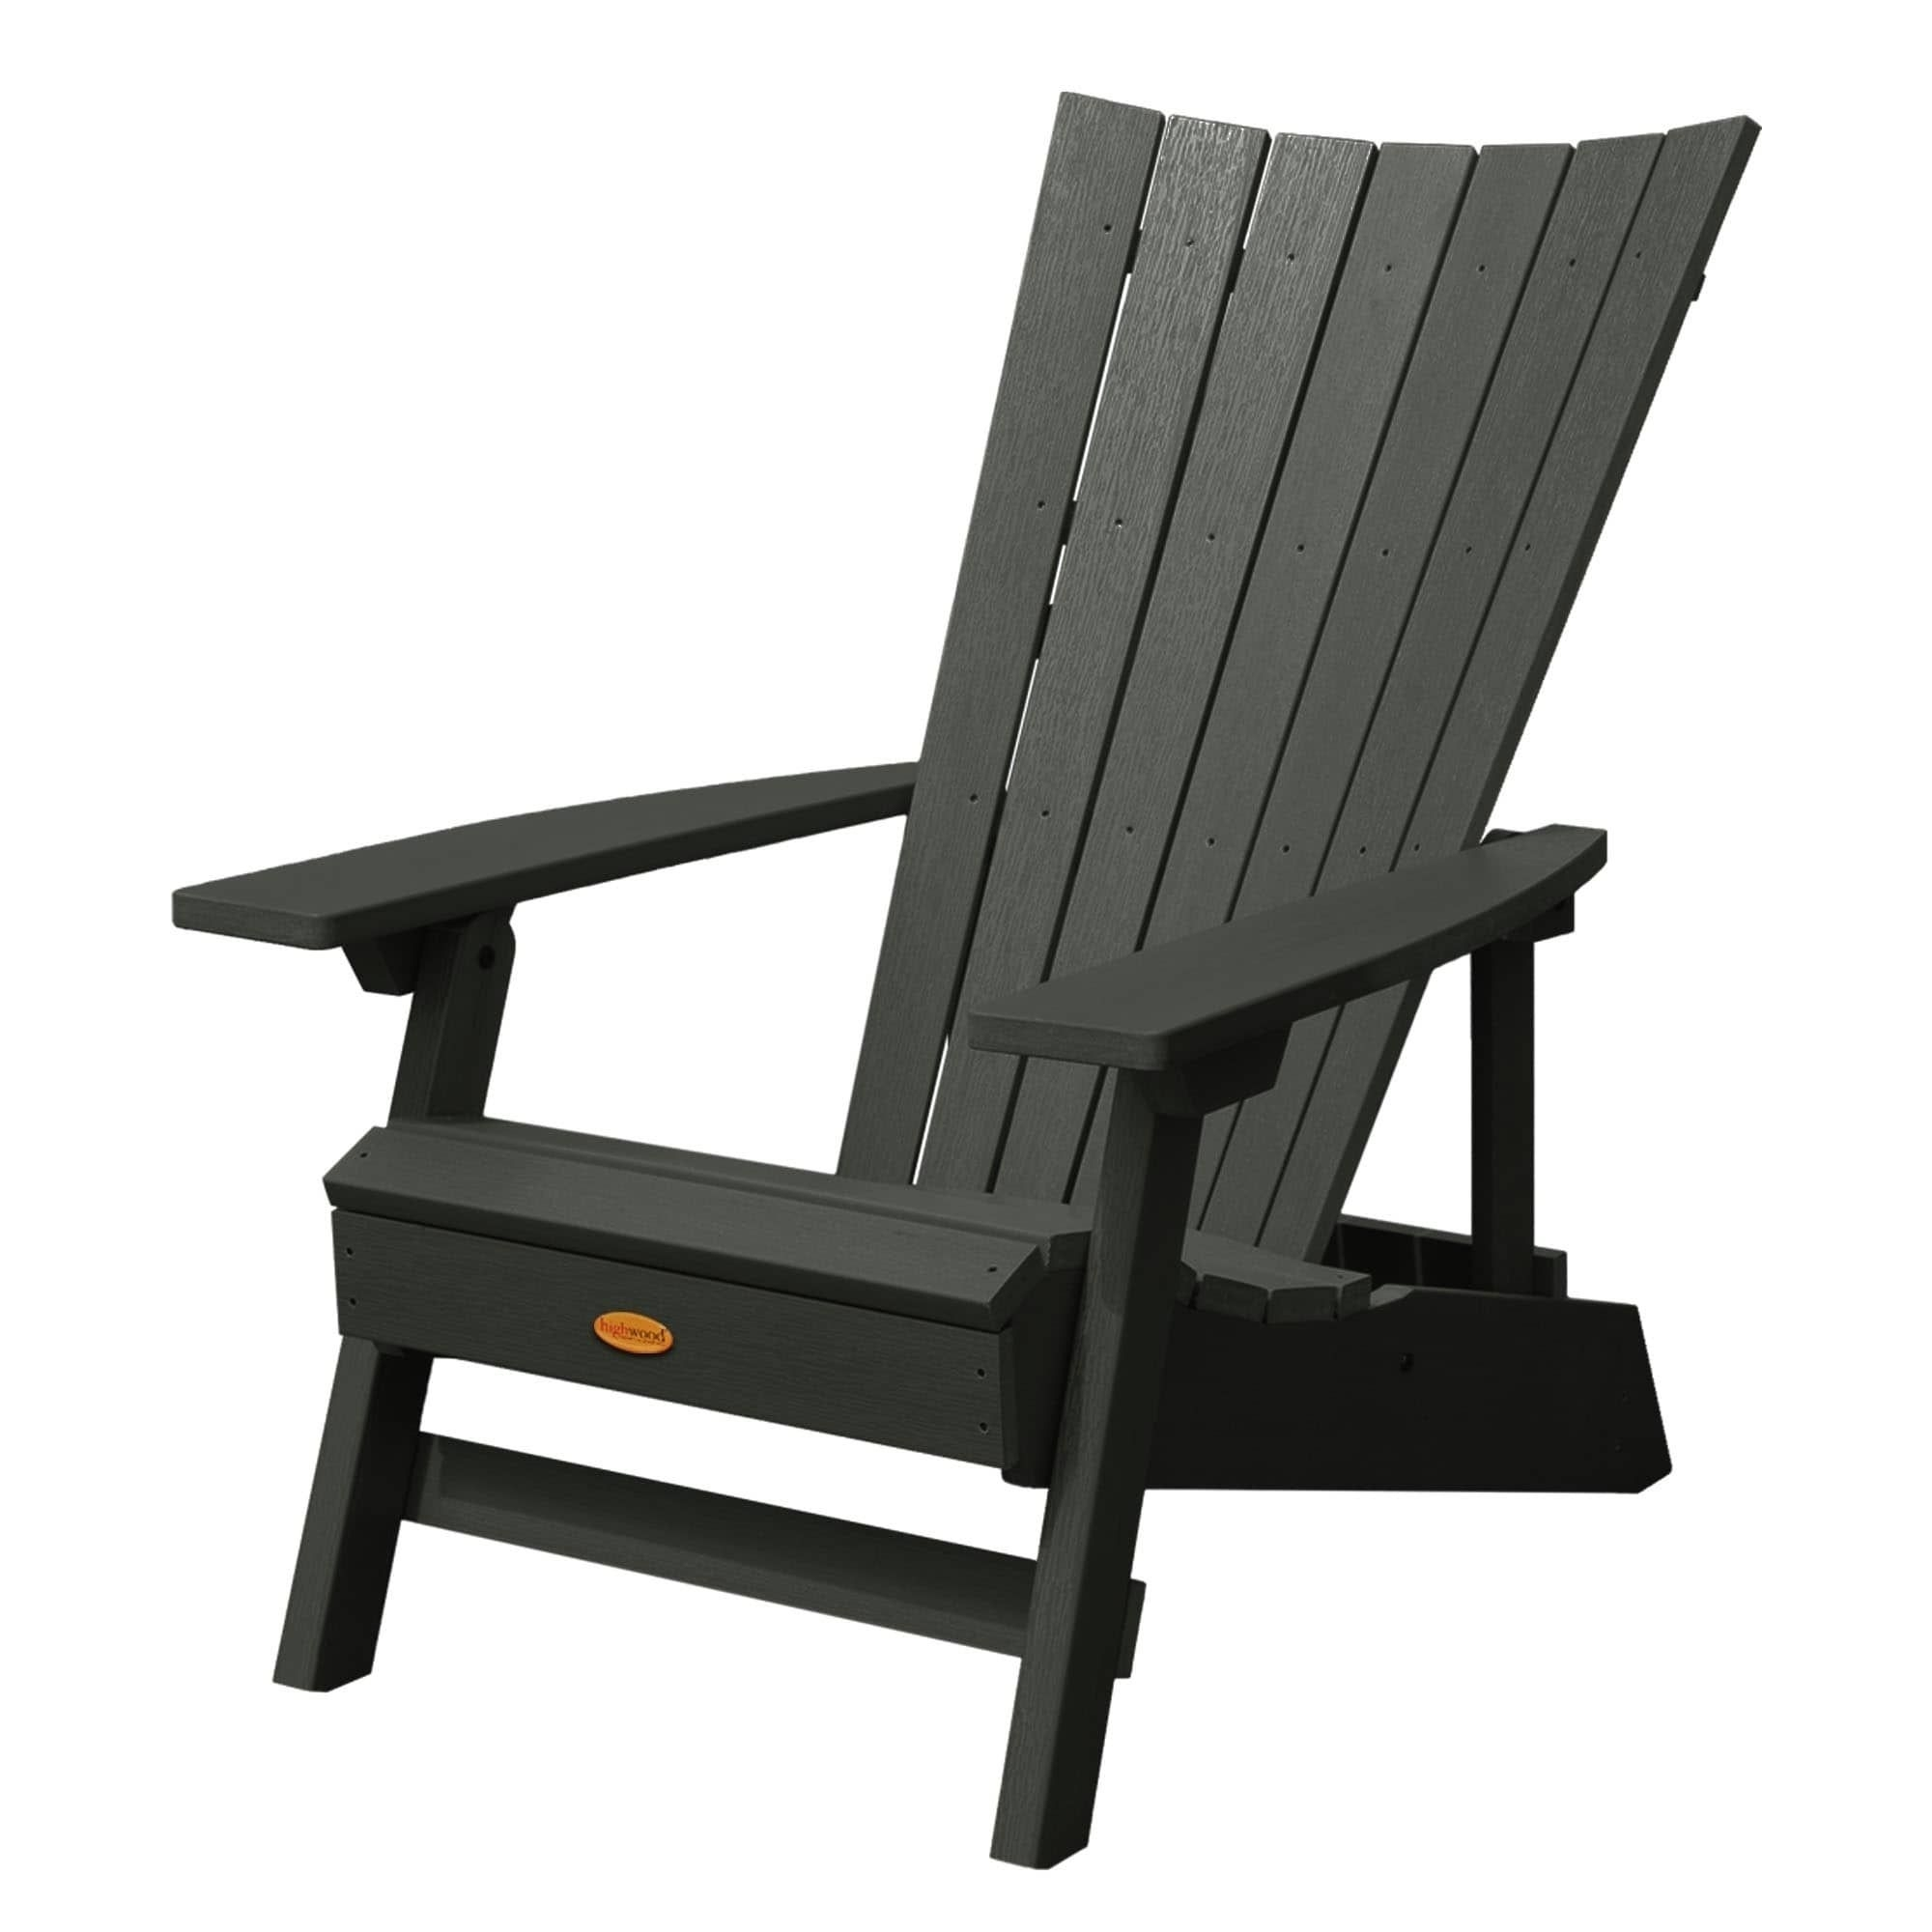 Highwood Manhattan Beach Adirondack Chair (Black), Size Single With Regard To Manhattan Patio Grey Rocking Chairs (View 3 of 15)